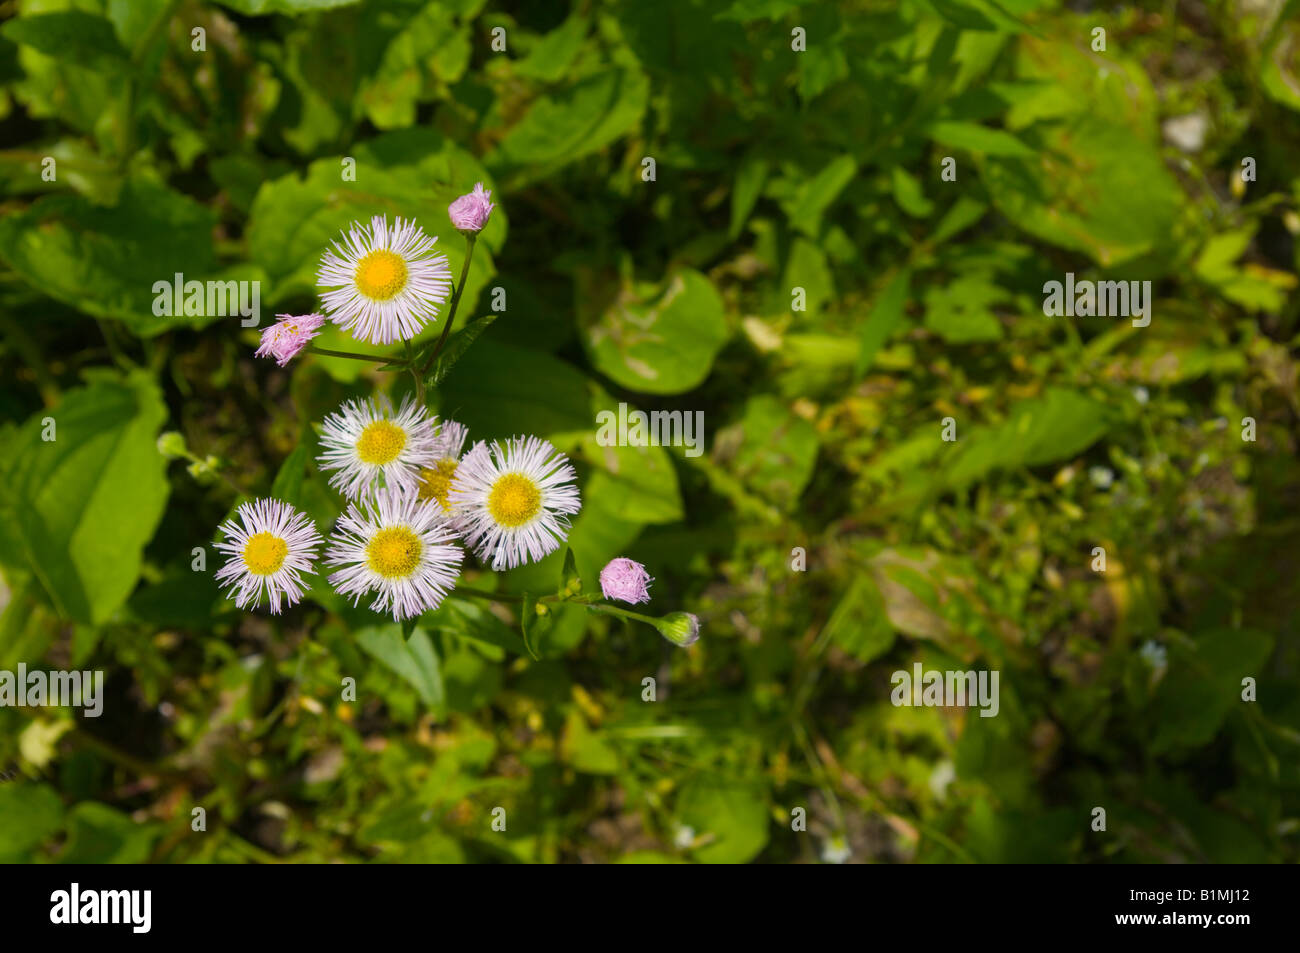 Common Fleabane in bloom with partially open blooms showing fuzziness of leaves Stock Photo